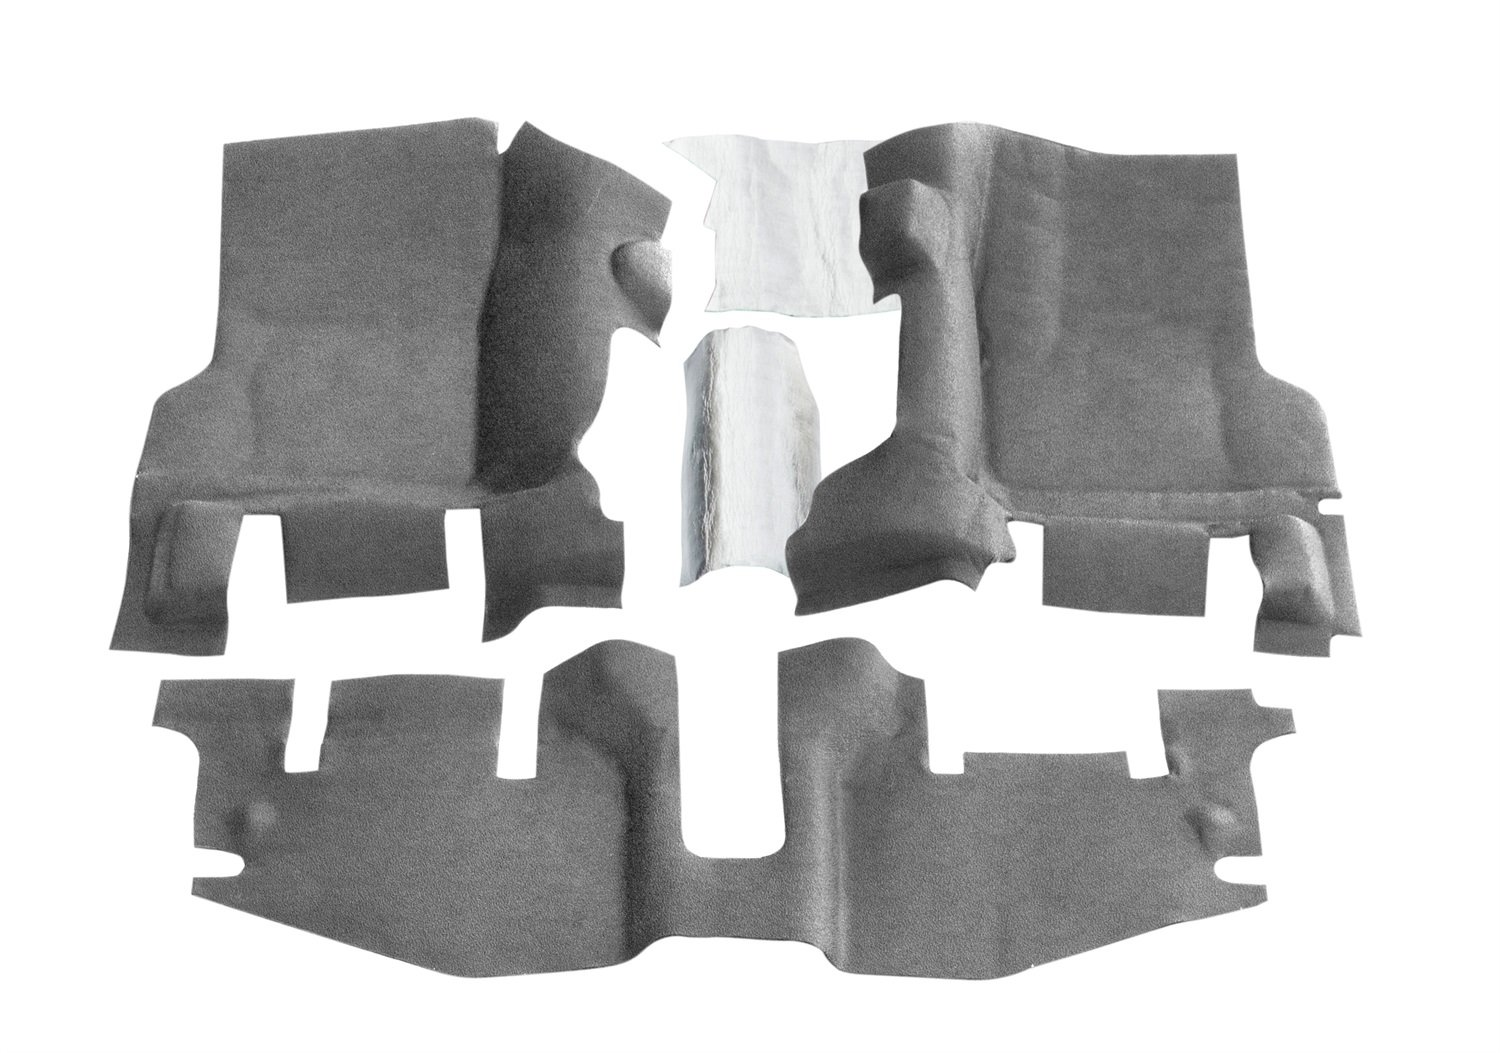 5e60a100ab BedRug Jeep Kit - BedTred BTTJ97F fits 97-06 WRANGLER TJ/LJ FRONT 3PC FLOOR  KIT (WITH CENTER CONSOLE) - INCLUDES HEAT SHIELDS